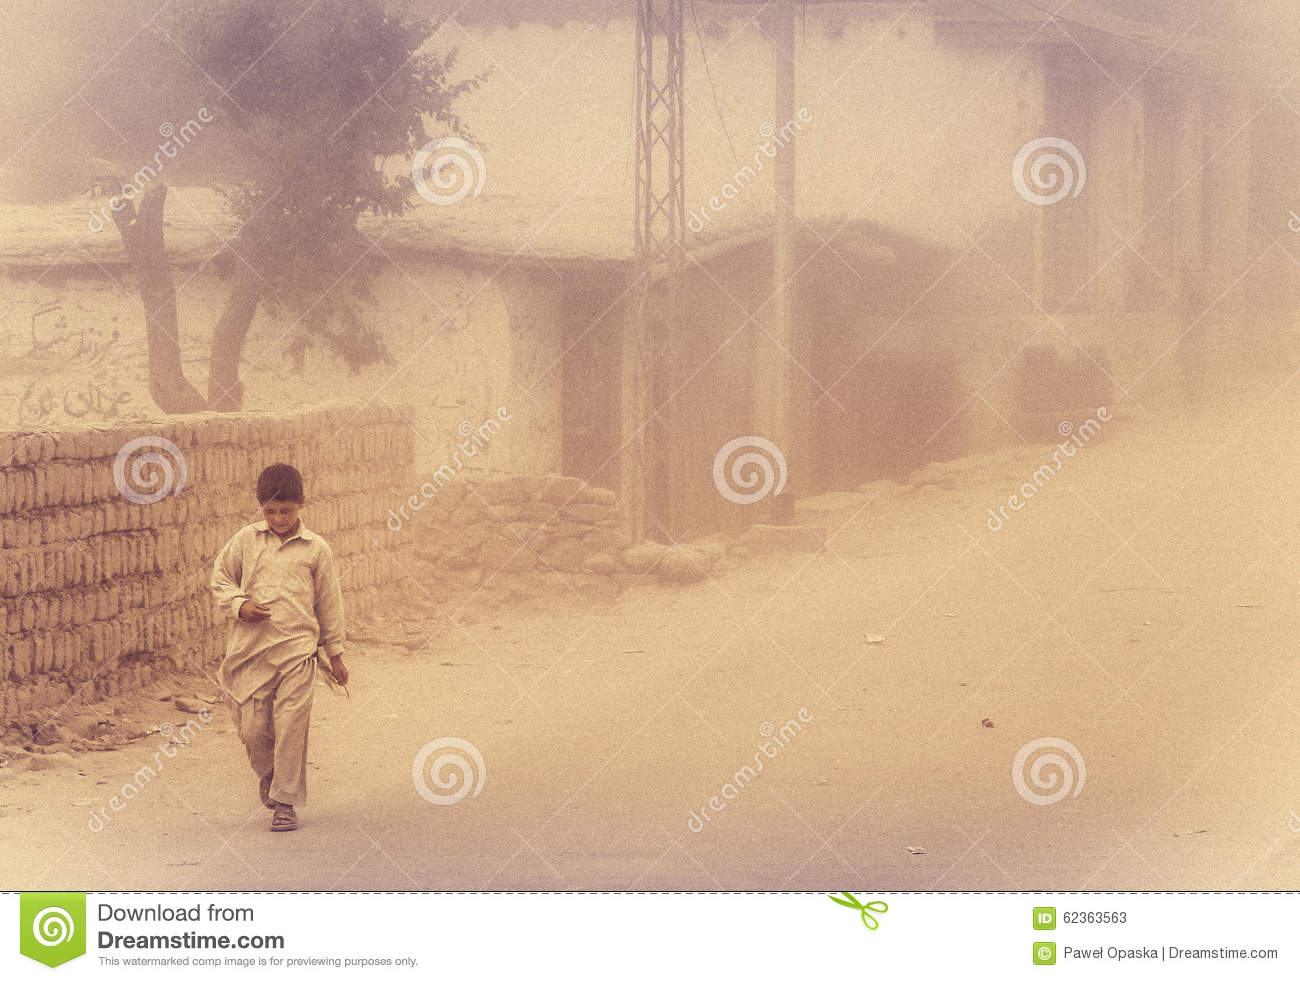 boy in duststorm editorial stock photo image of child asian clipart frame asian clipart scenery